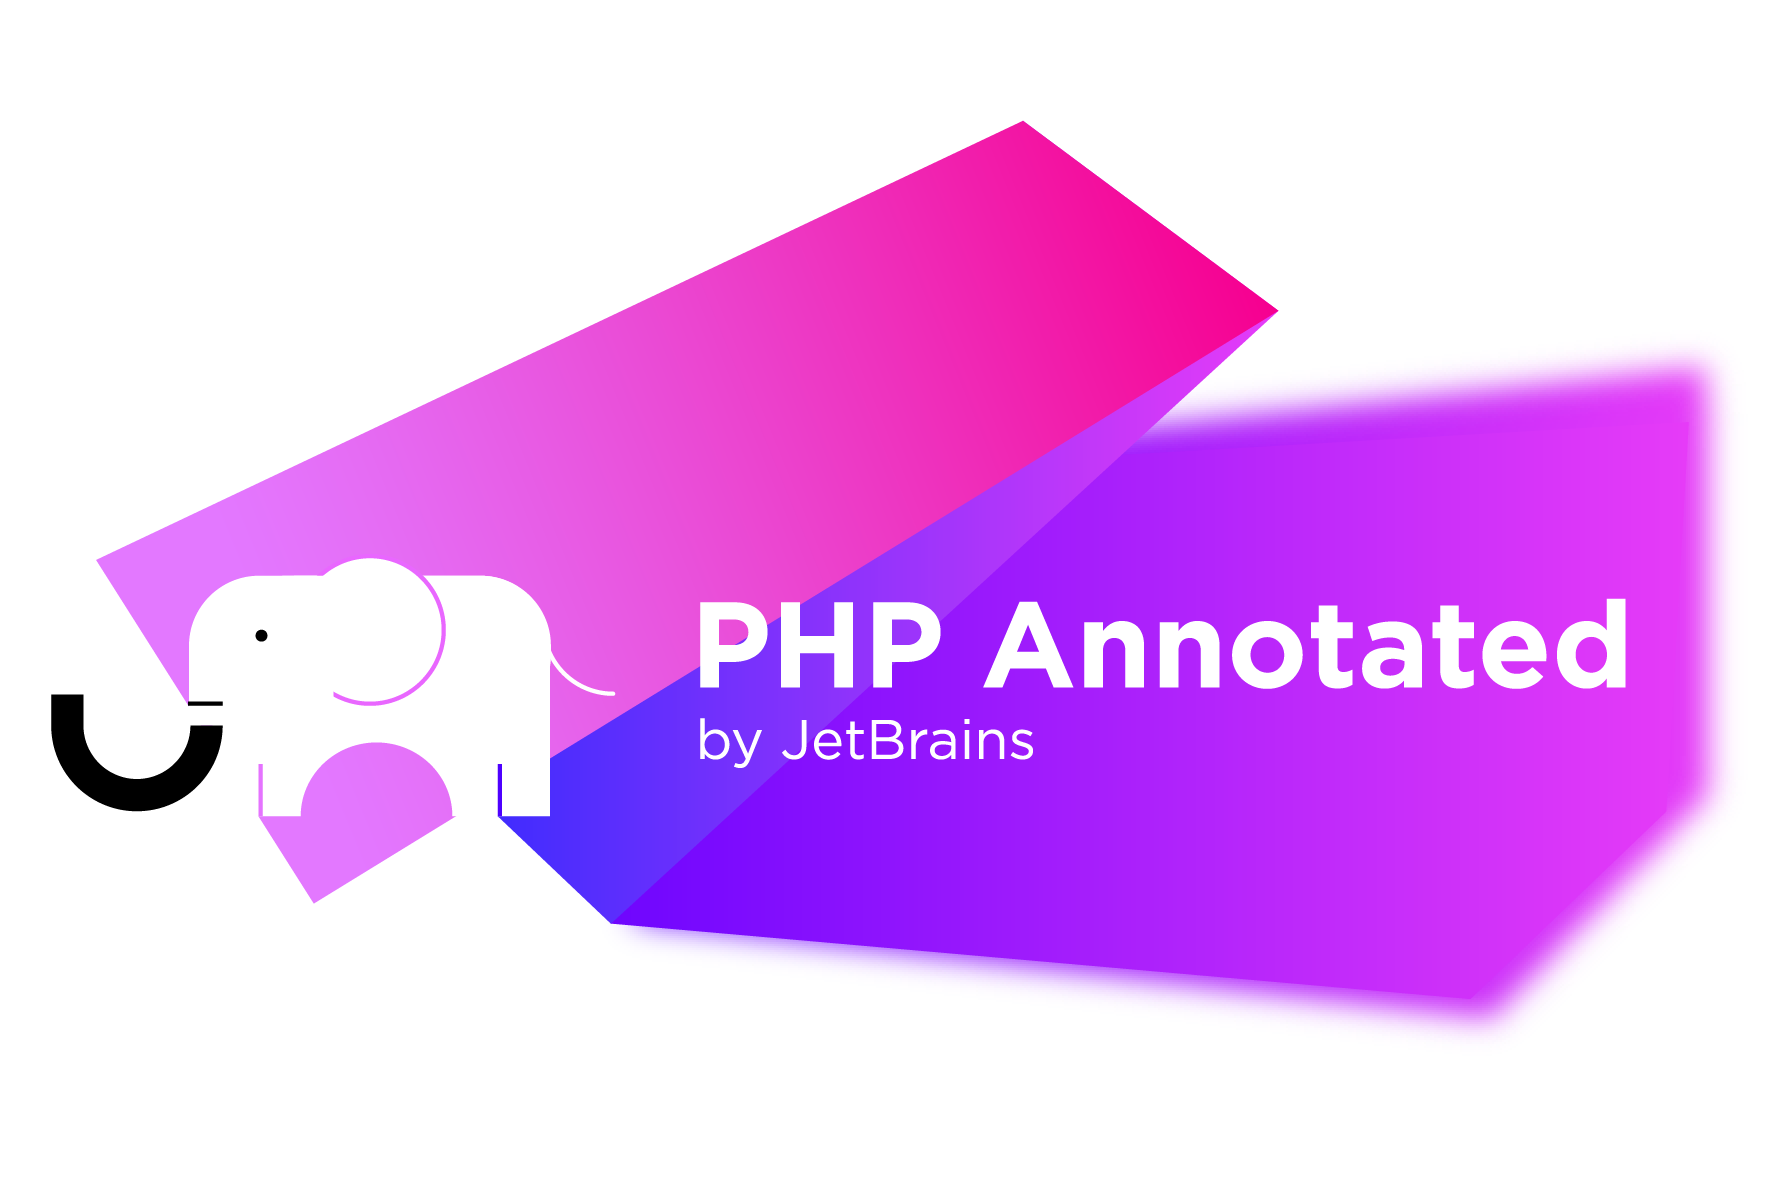 php_annotated